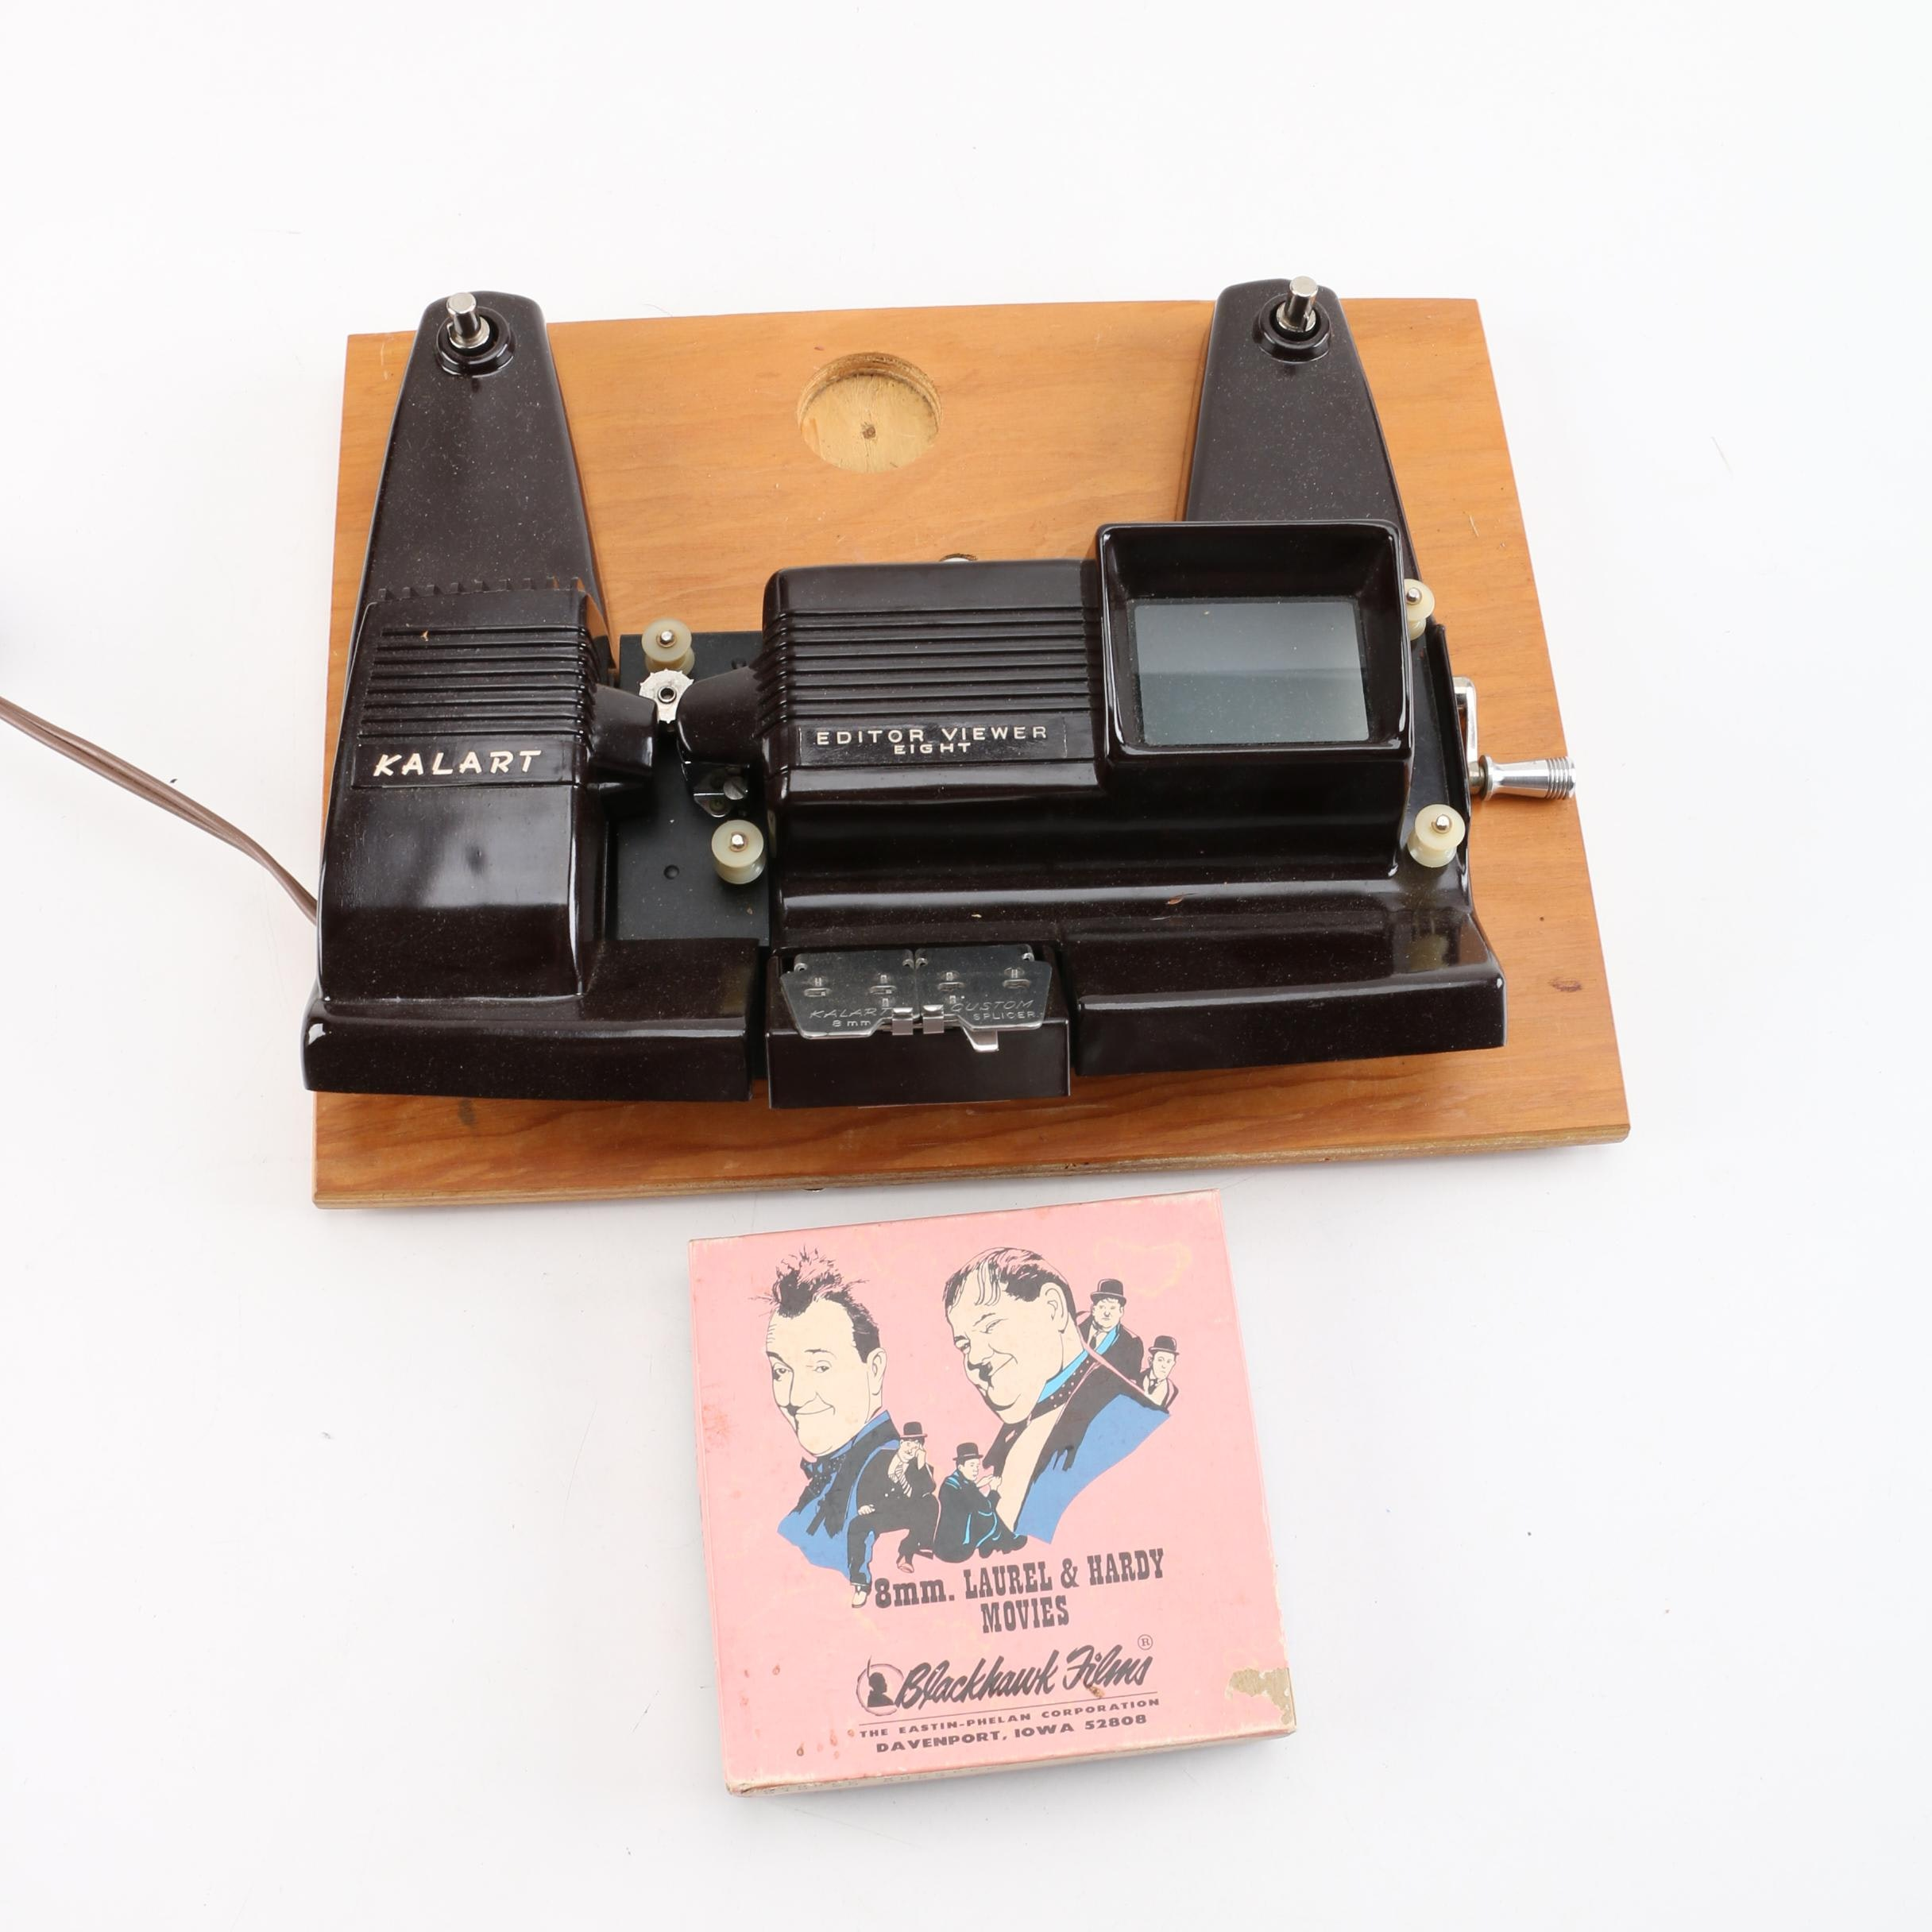 Vintage Kalart Editor Viewer Eight with Laurel & Hardy 8mm Movie Reel